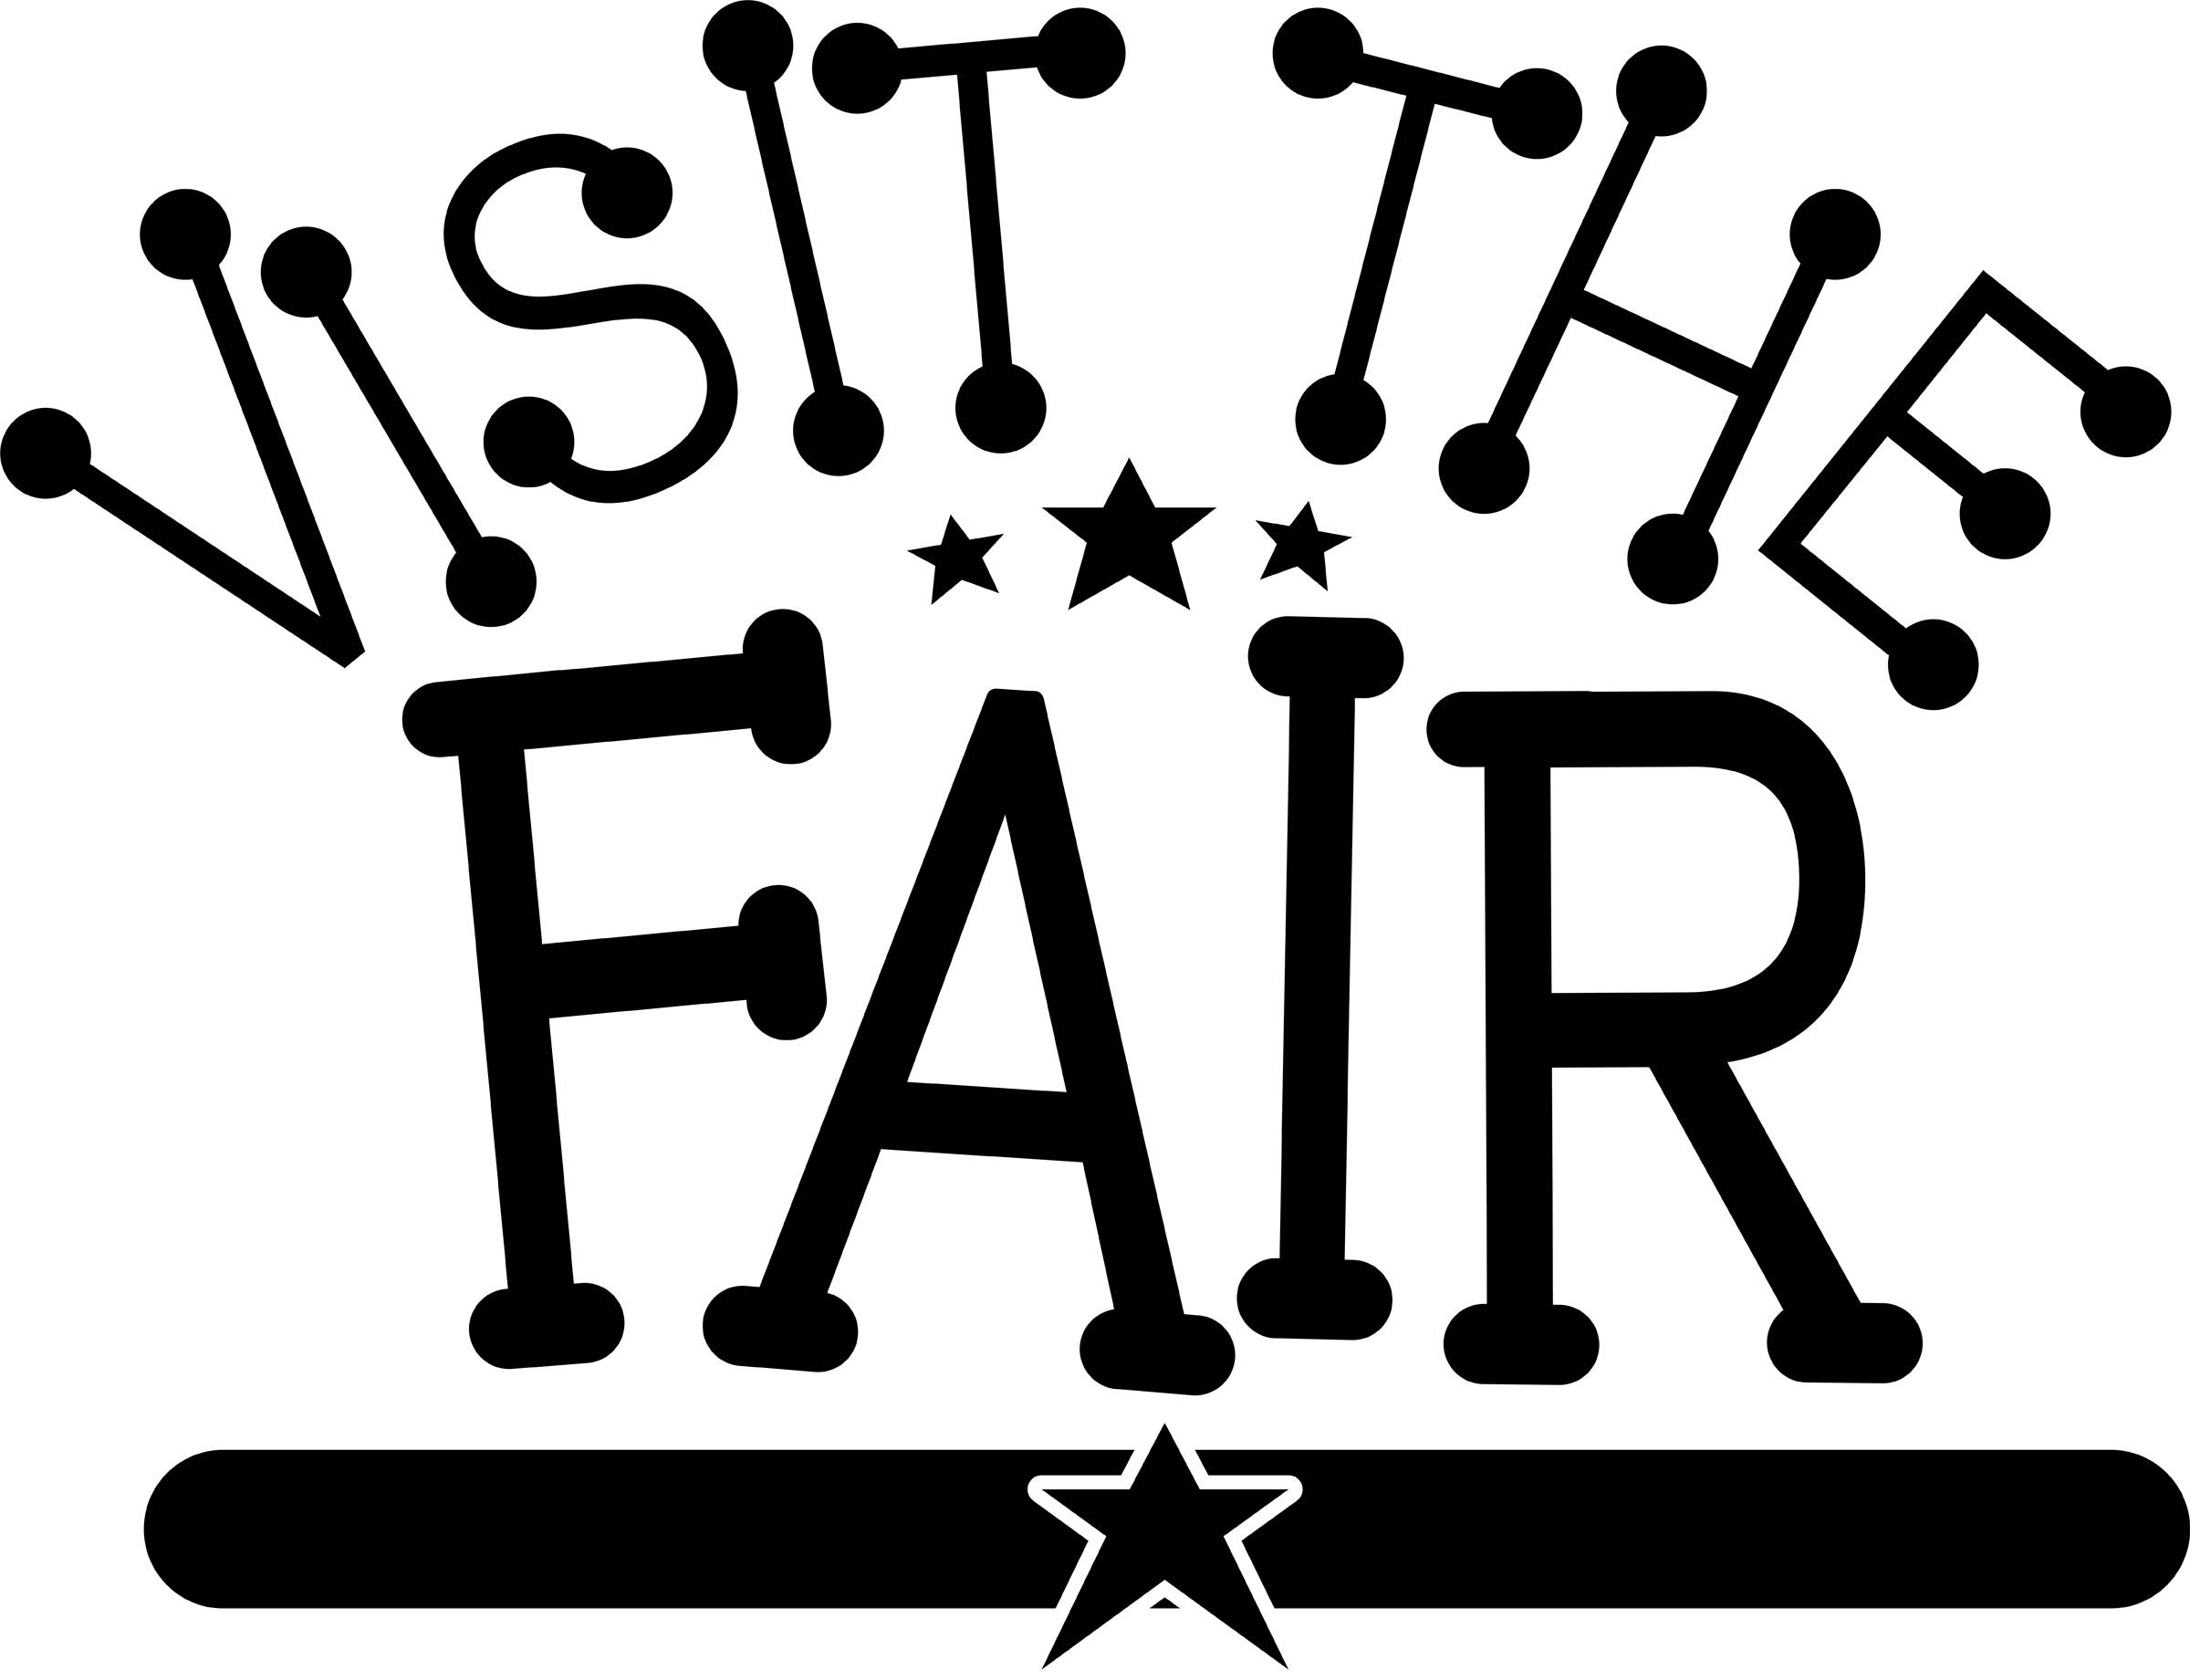 County fair clipart free image transparent stock Free The Fair Cliparts, Download Free Clip Art, Free Clip Art on ... image transparent stock